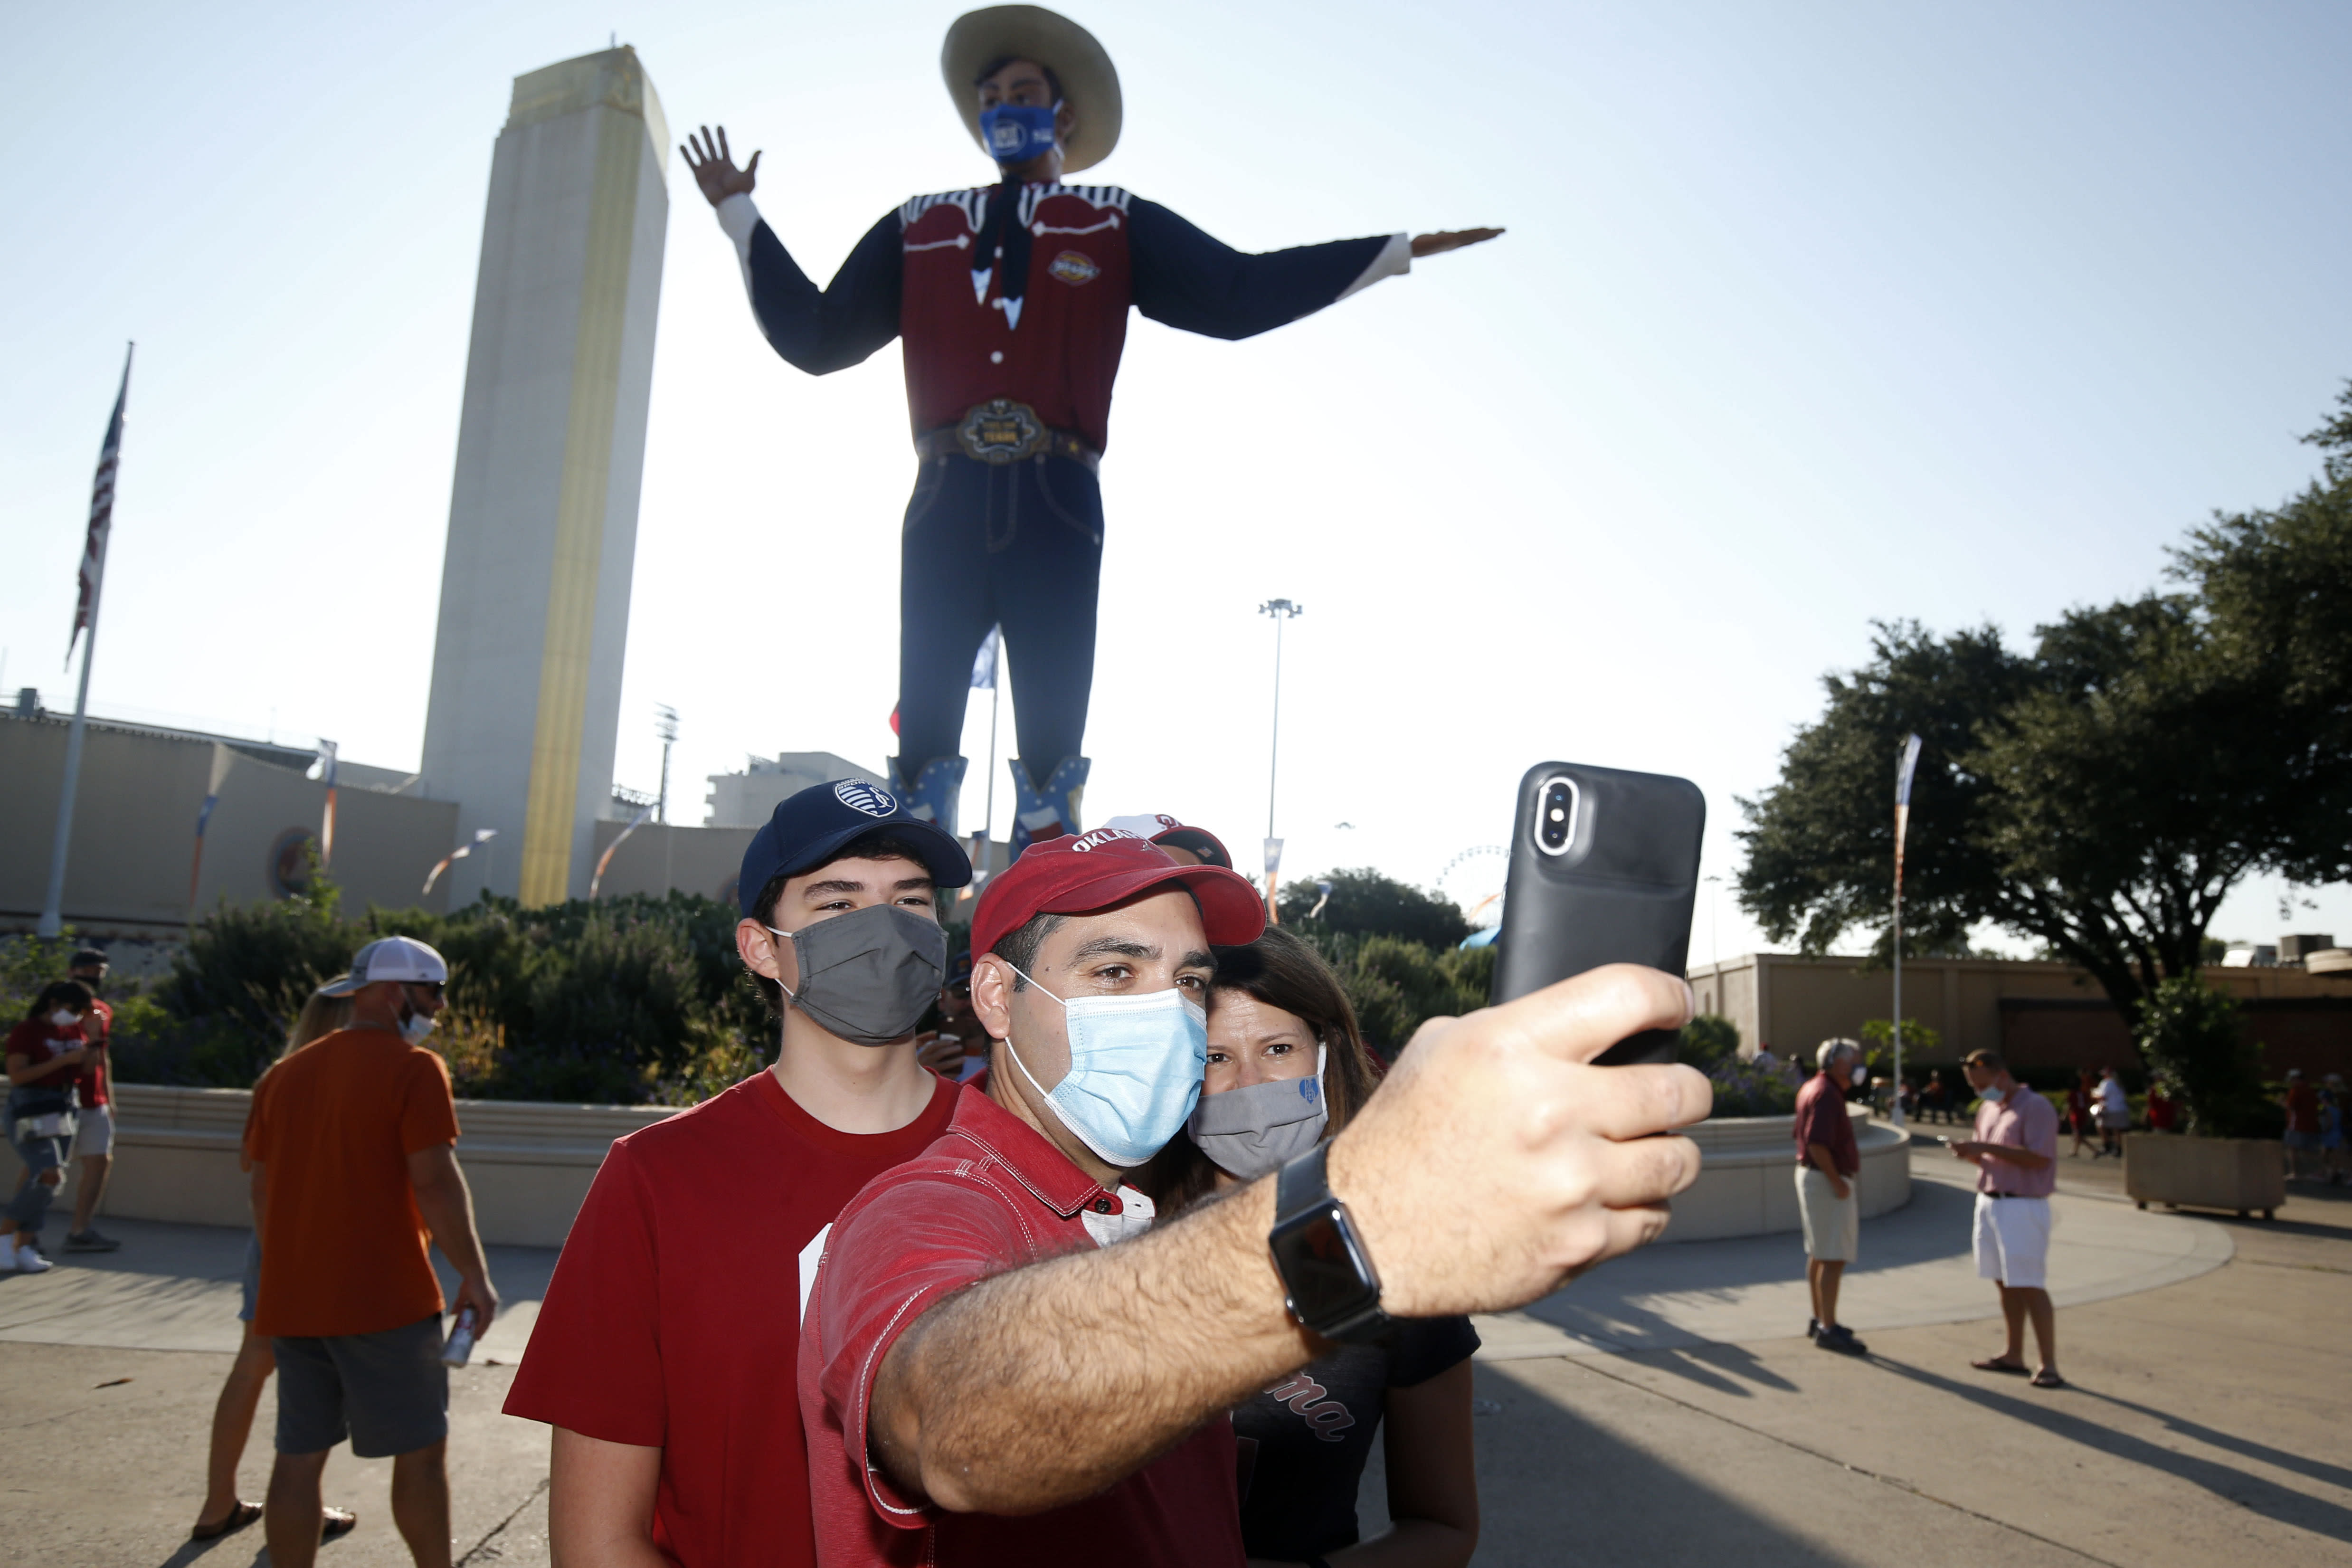 """Oklahoma fans Lucas Aleman, Josias Aleman and Annie Aleman, of Kansas City, take a selfie in front of """"Big Tex"""" prior to an NCAA college football game between University of Texas and Oklahoma. in Dallas, Saturday, Oct. 10, 2020. (AP Photo/Michael Ainsworth)"""